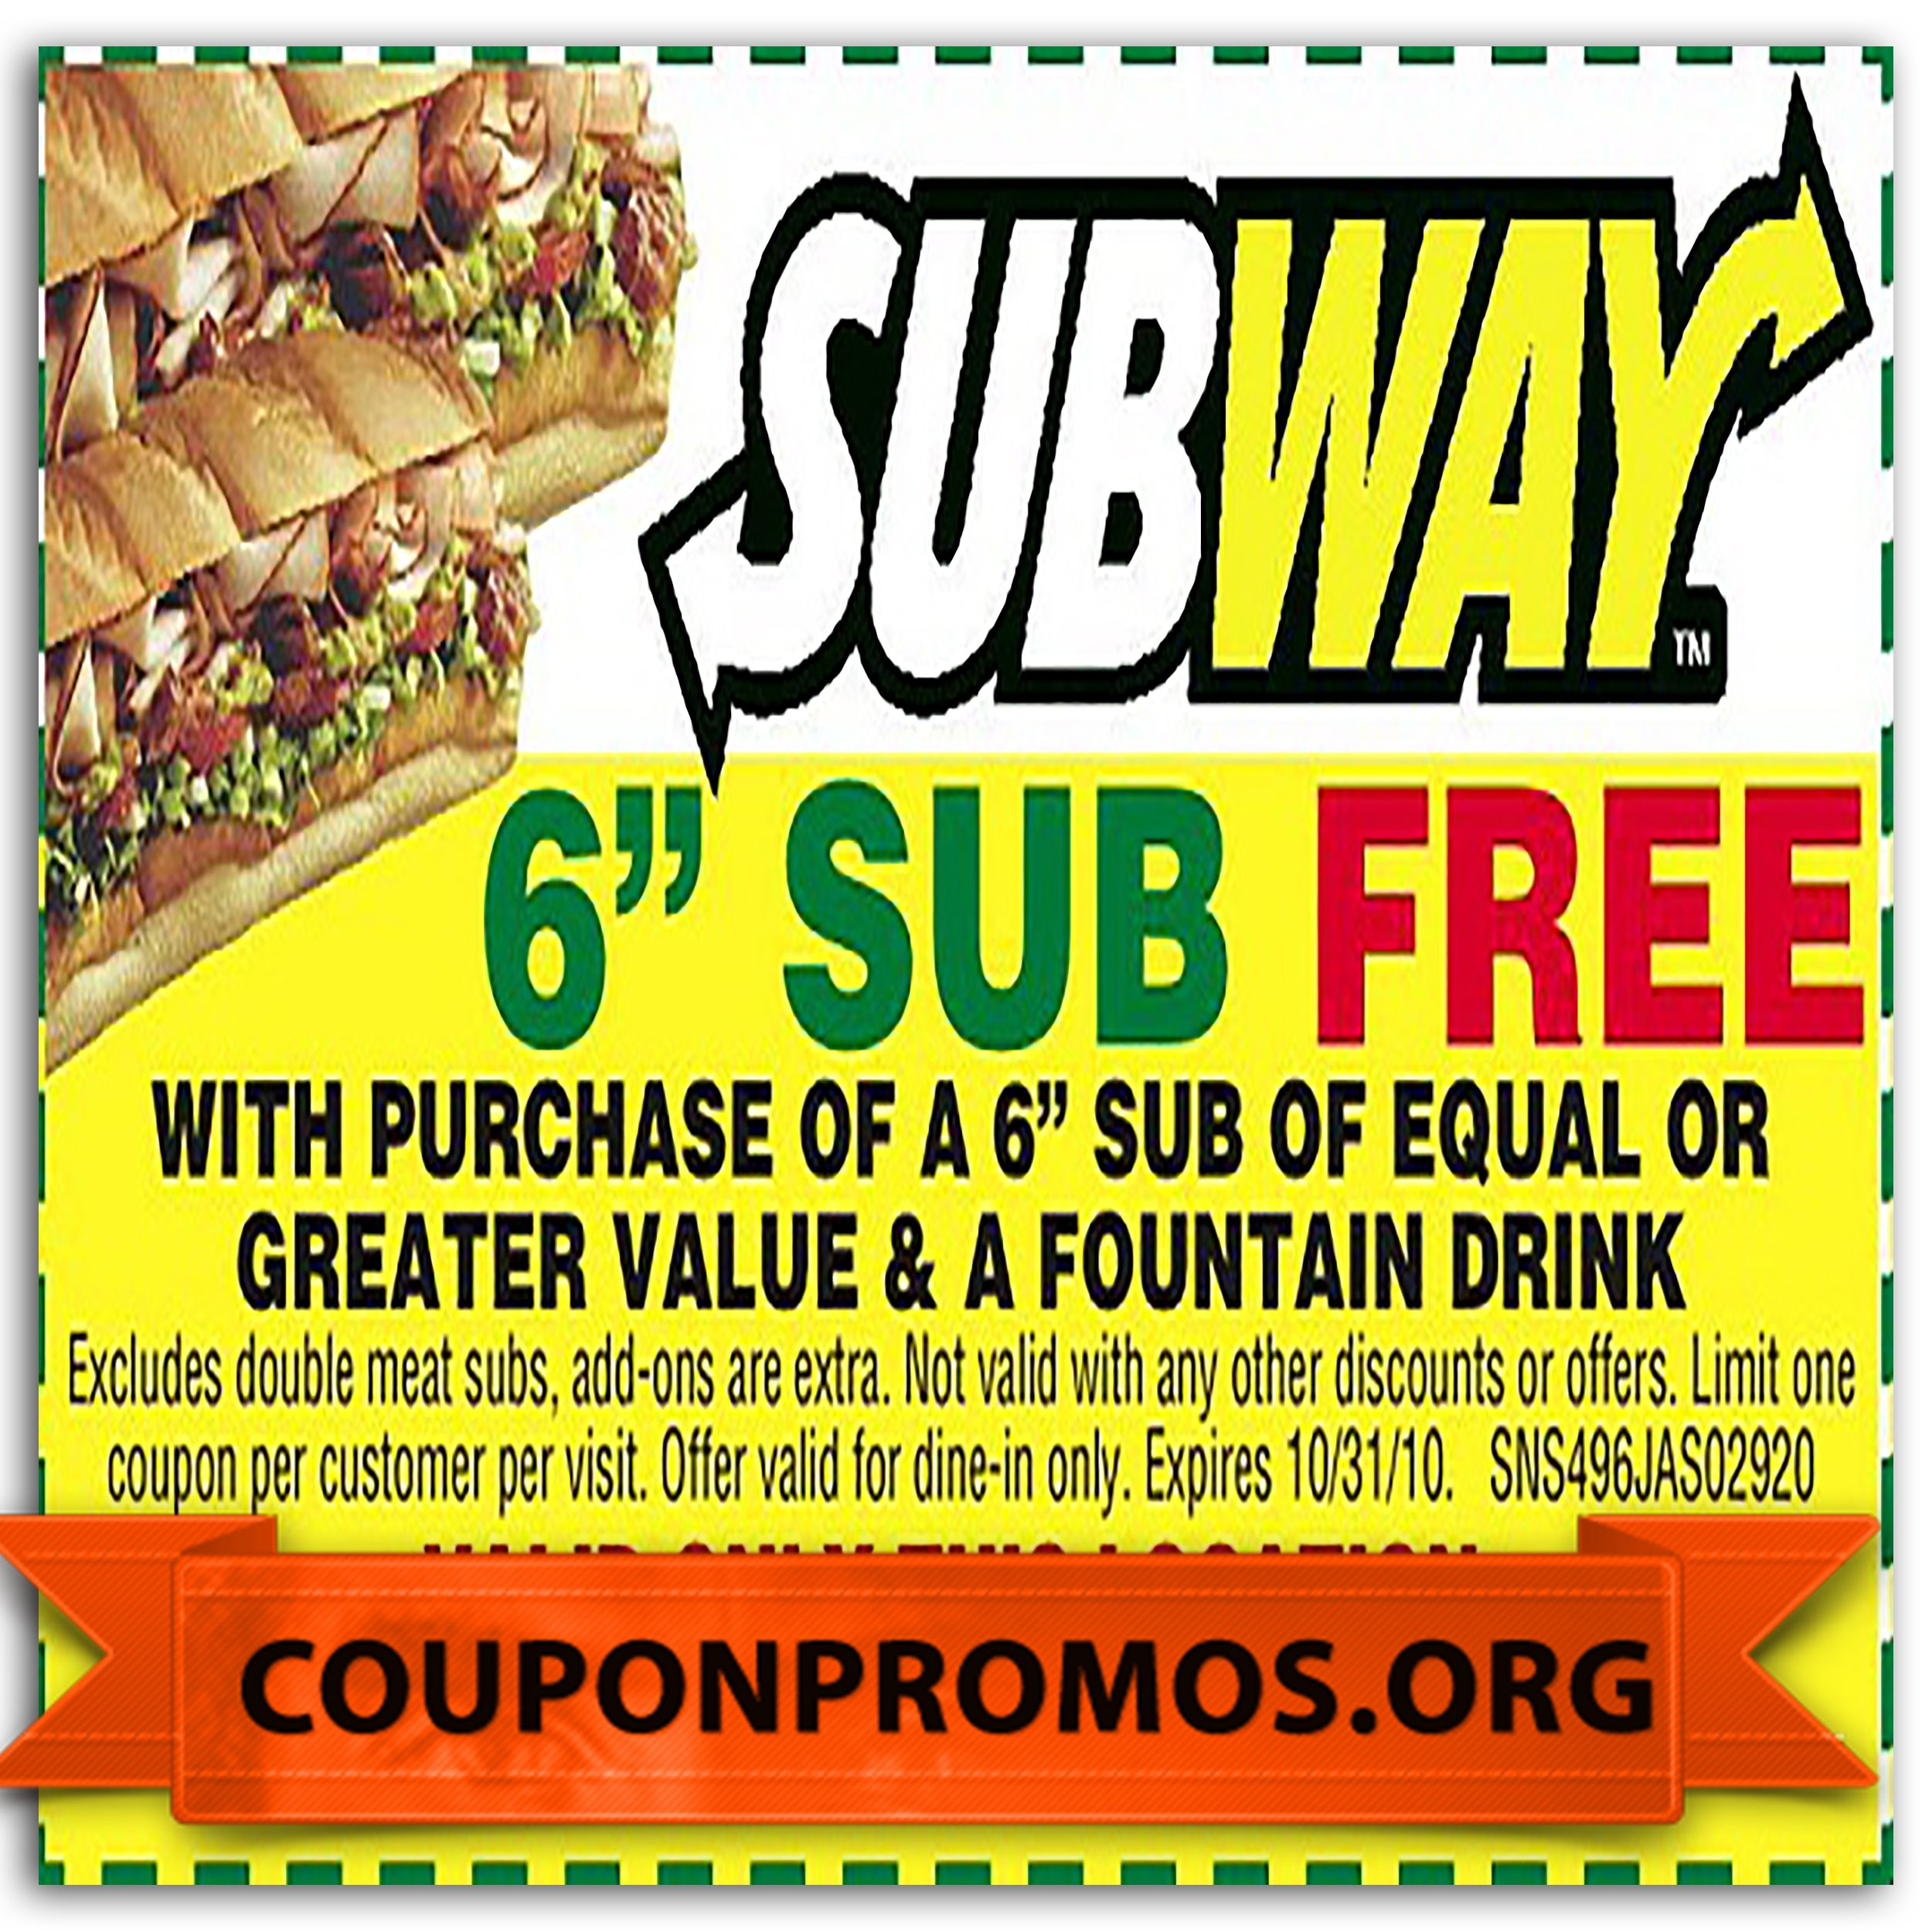 printable subway coupons canada for March | Coupons 2015 Printable ...